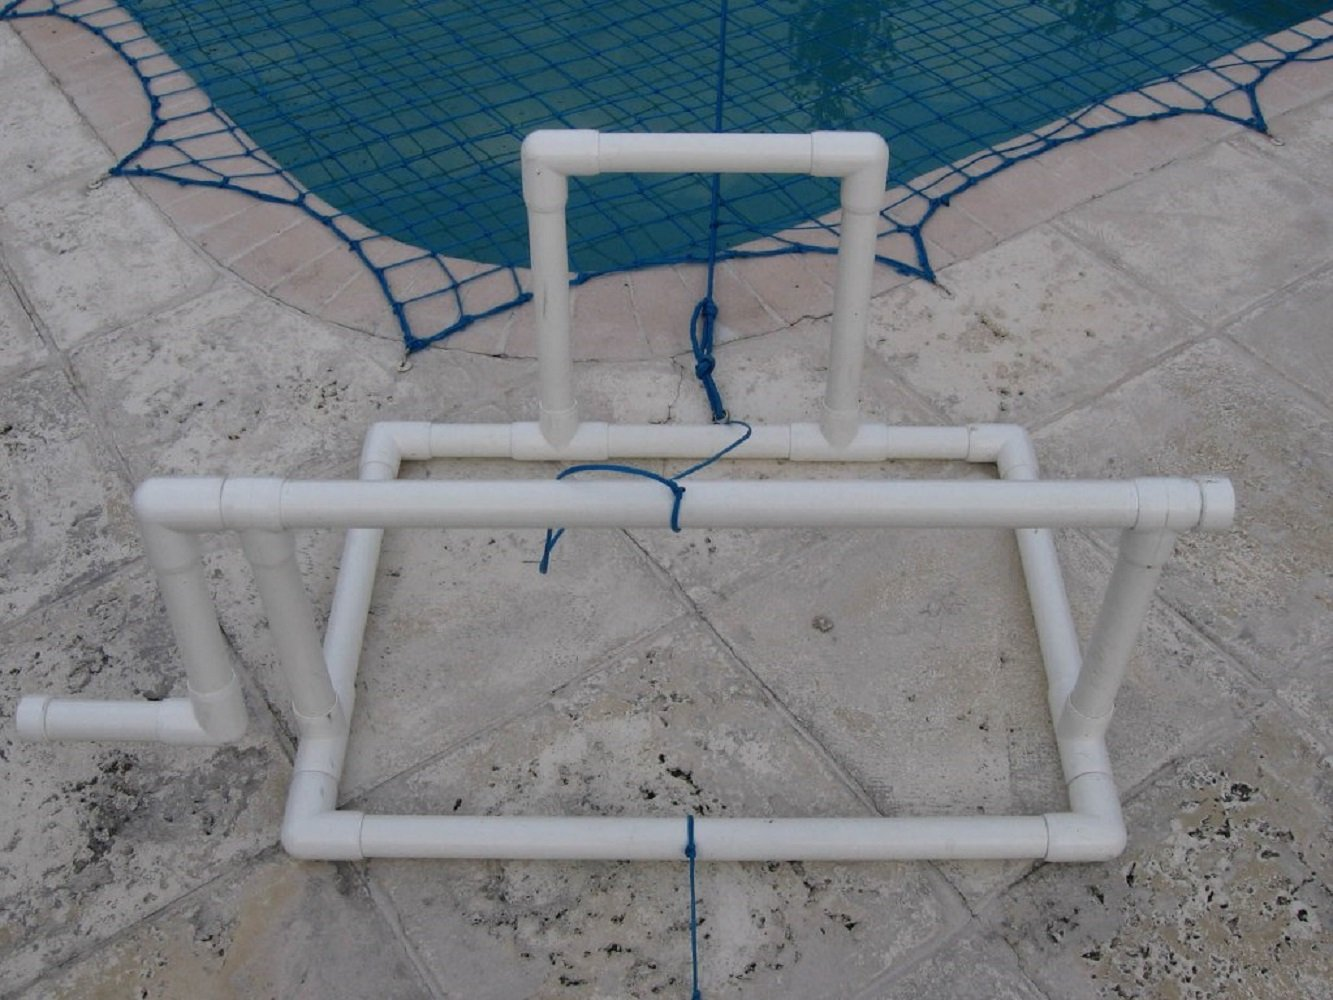 Water Warden WWN1836 Pool Safety Net for Pools Up to 18 by 36-Feet